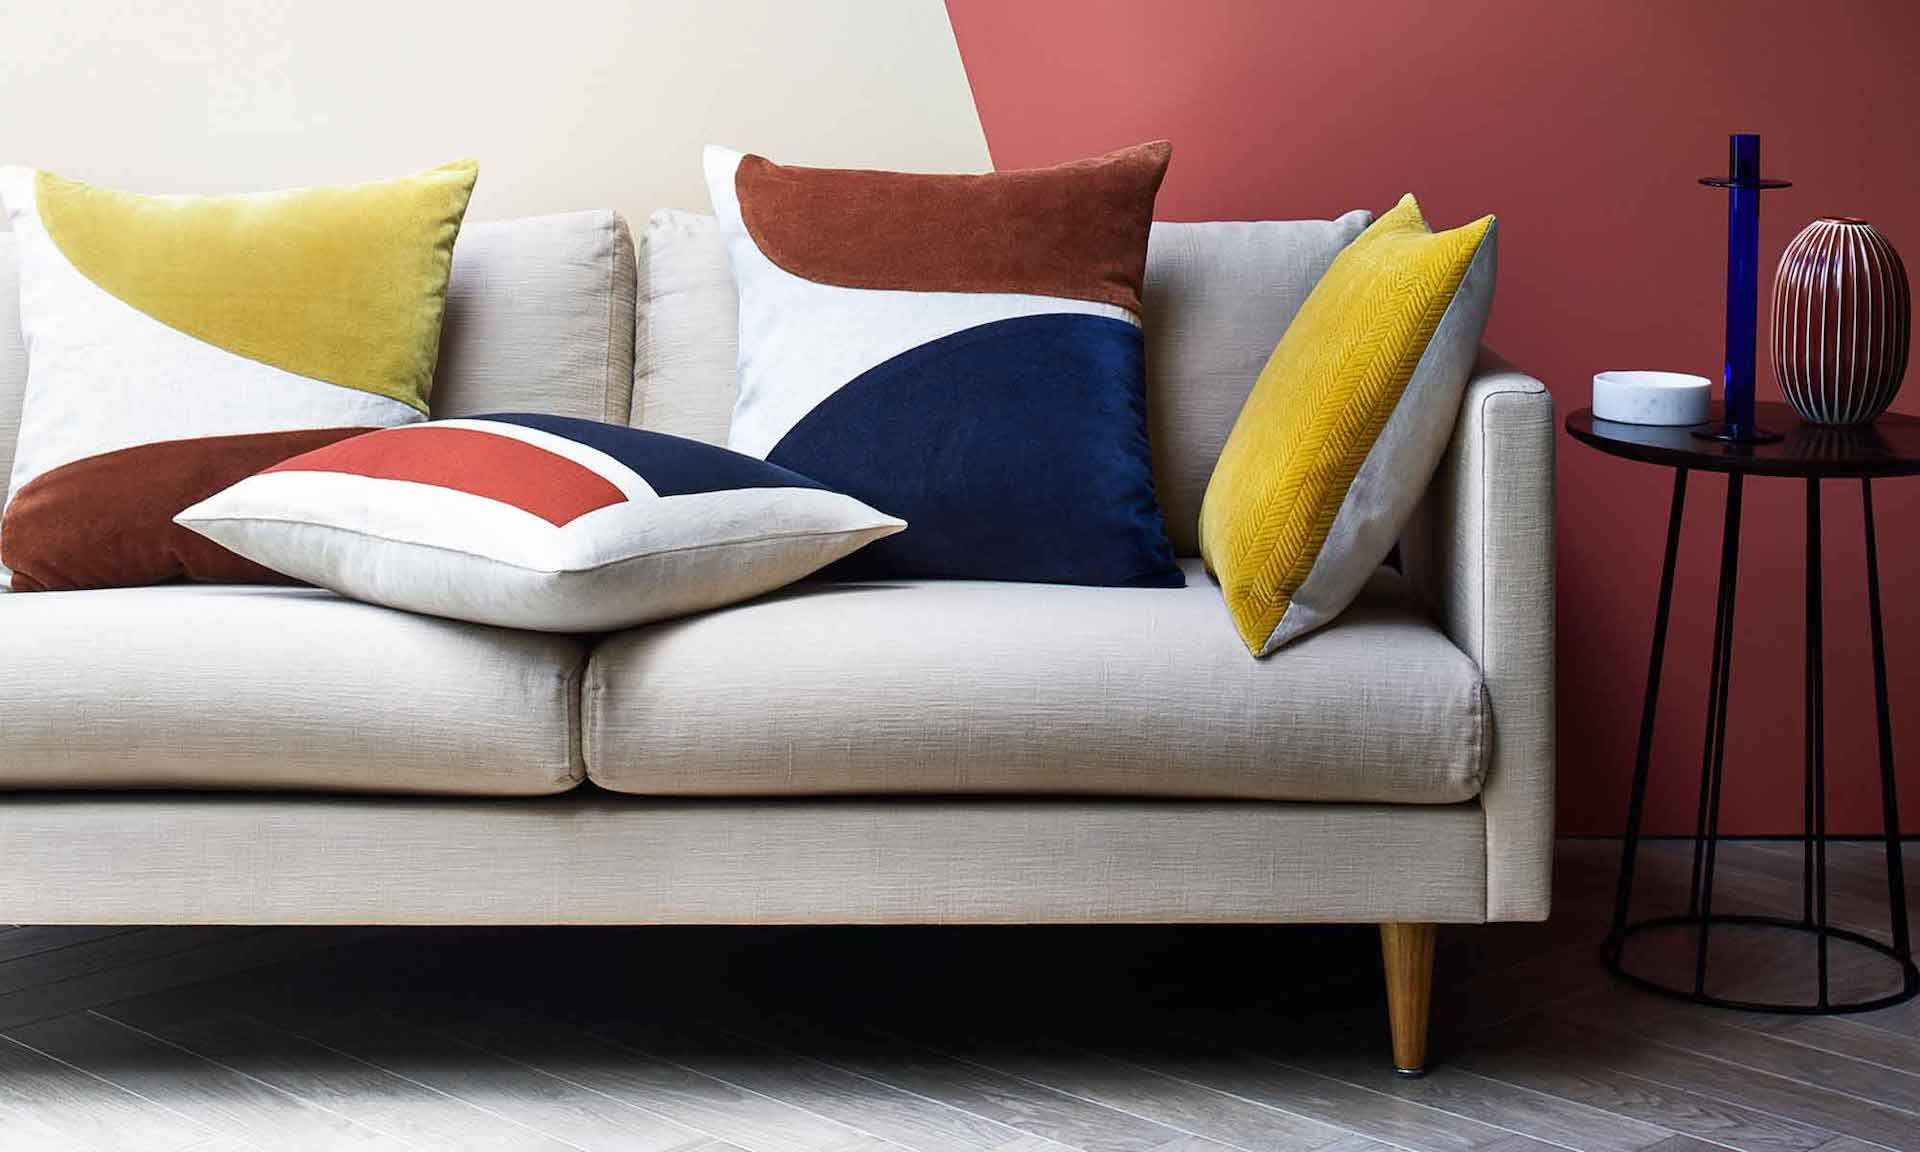 Colorful geometric patterns and velvet textures gives contrast on Retro furnitures.jpg